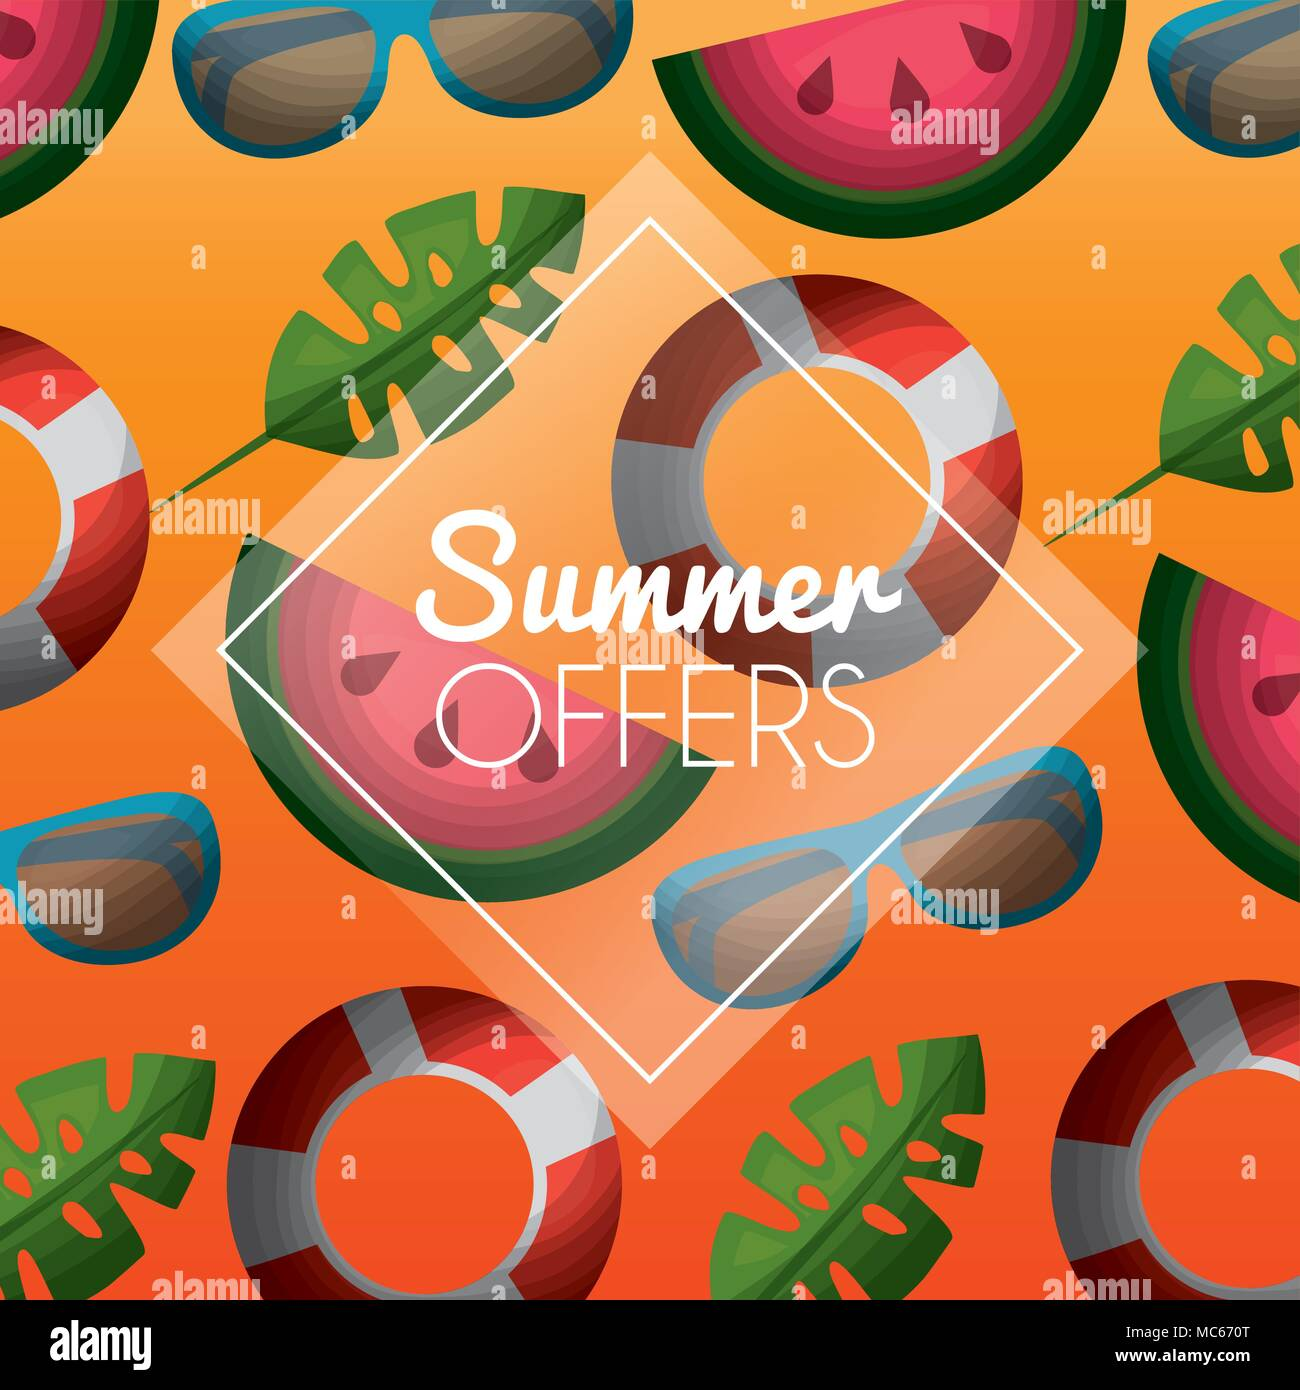 season summer image - Stock Vector